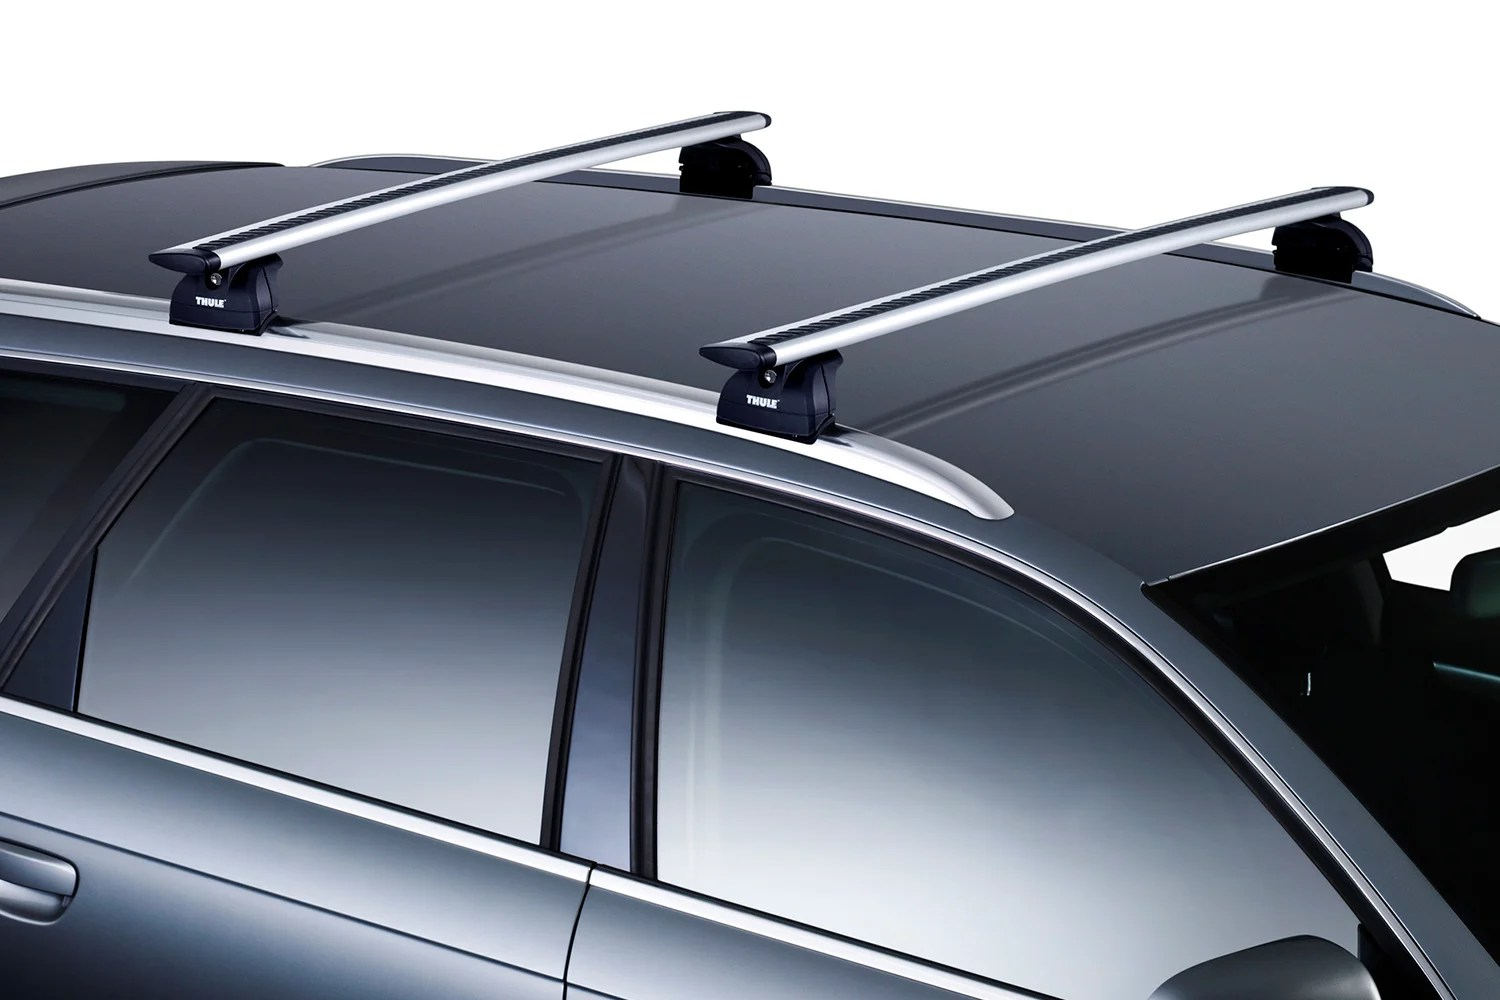 Auto Dakdragers 2007 2012 Audi Q7 Thule Roof Rack System Thule 460r